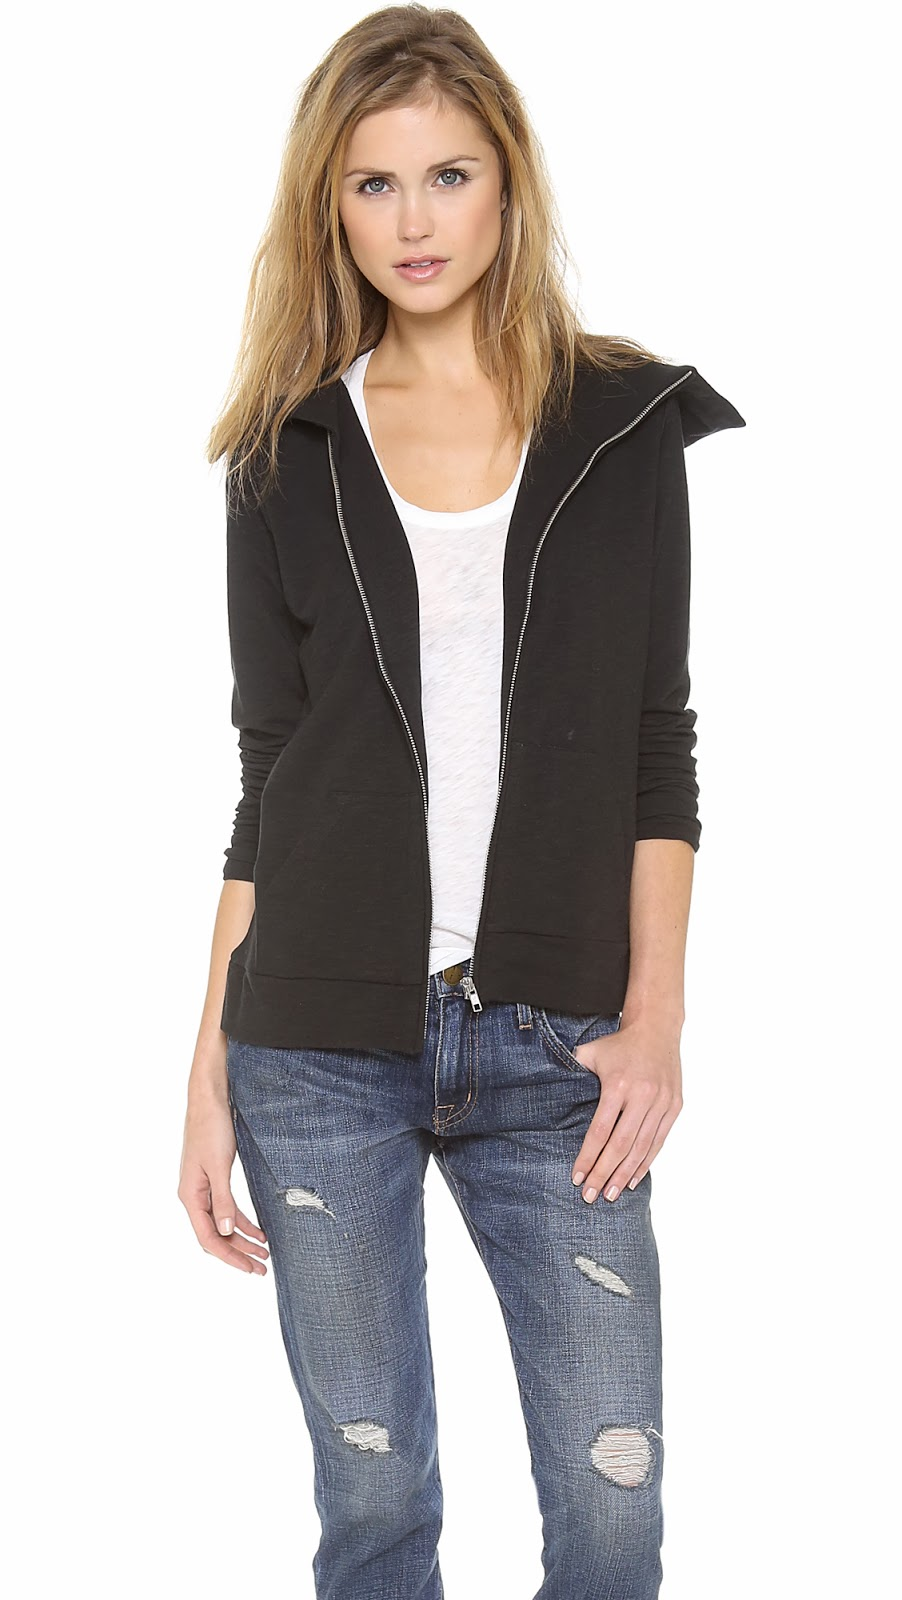 [Jacket=> Soft Joie Dayva Funnel Neck Jacket  | Today N.E.T